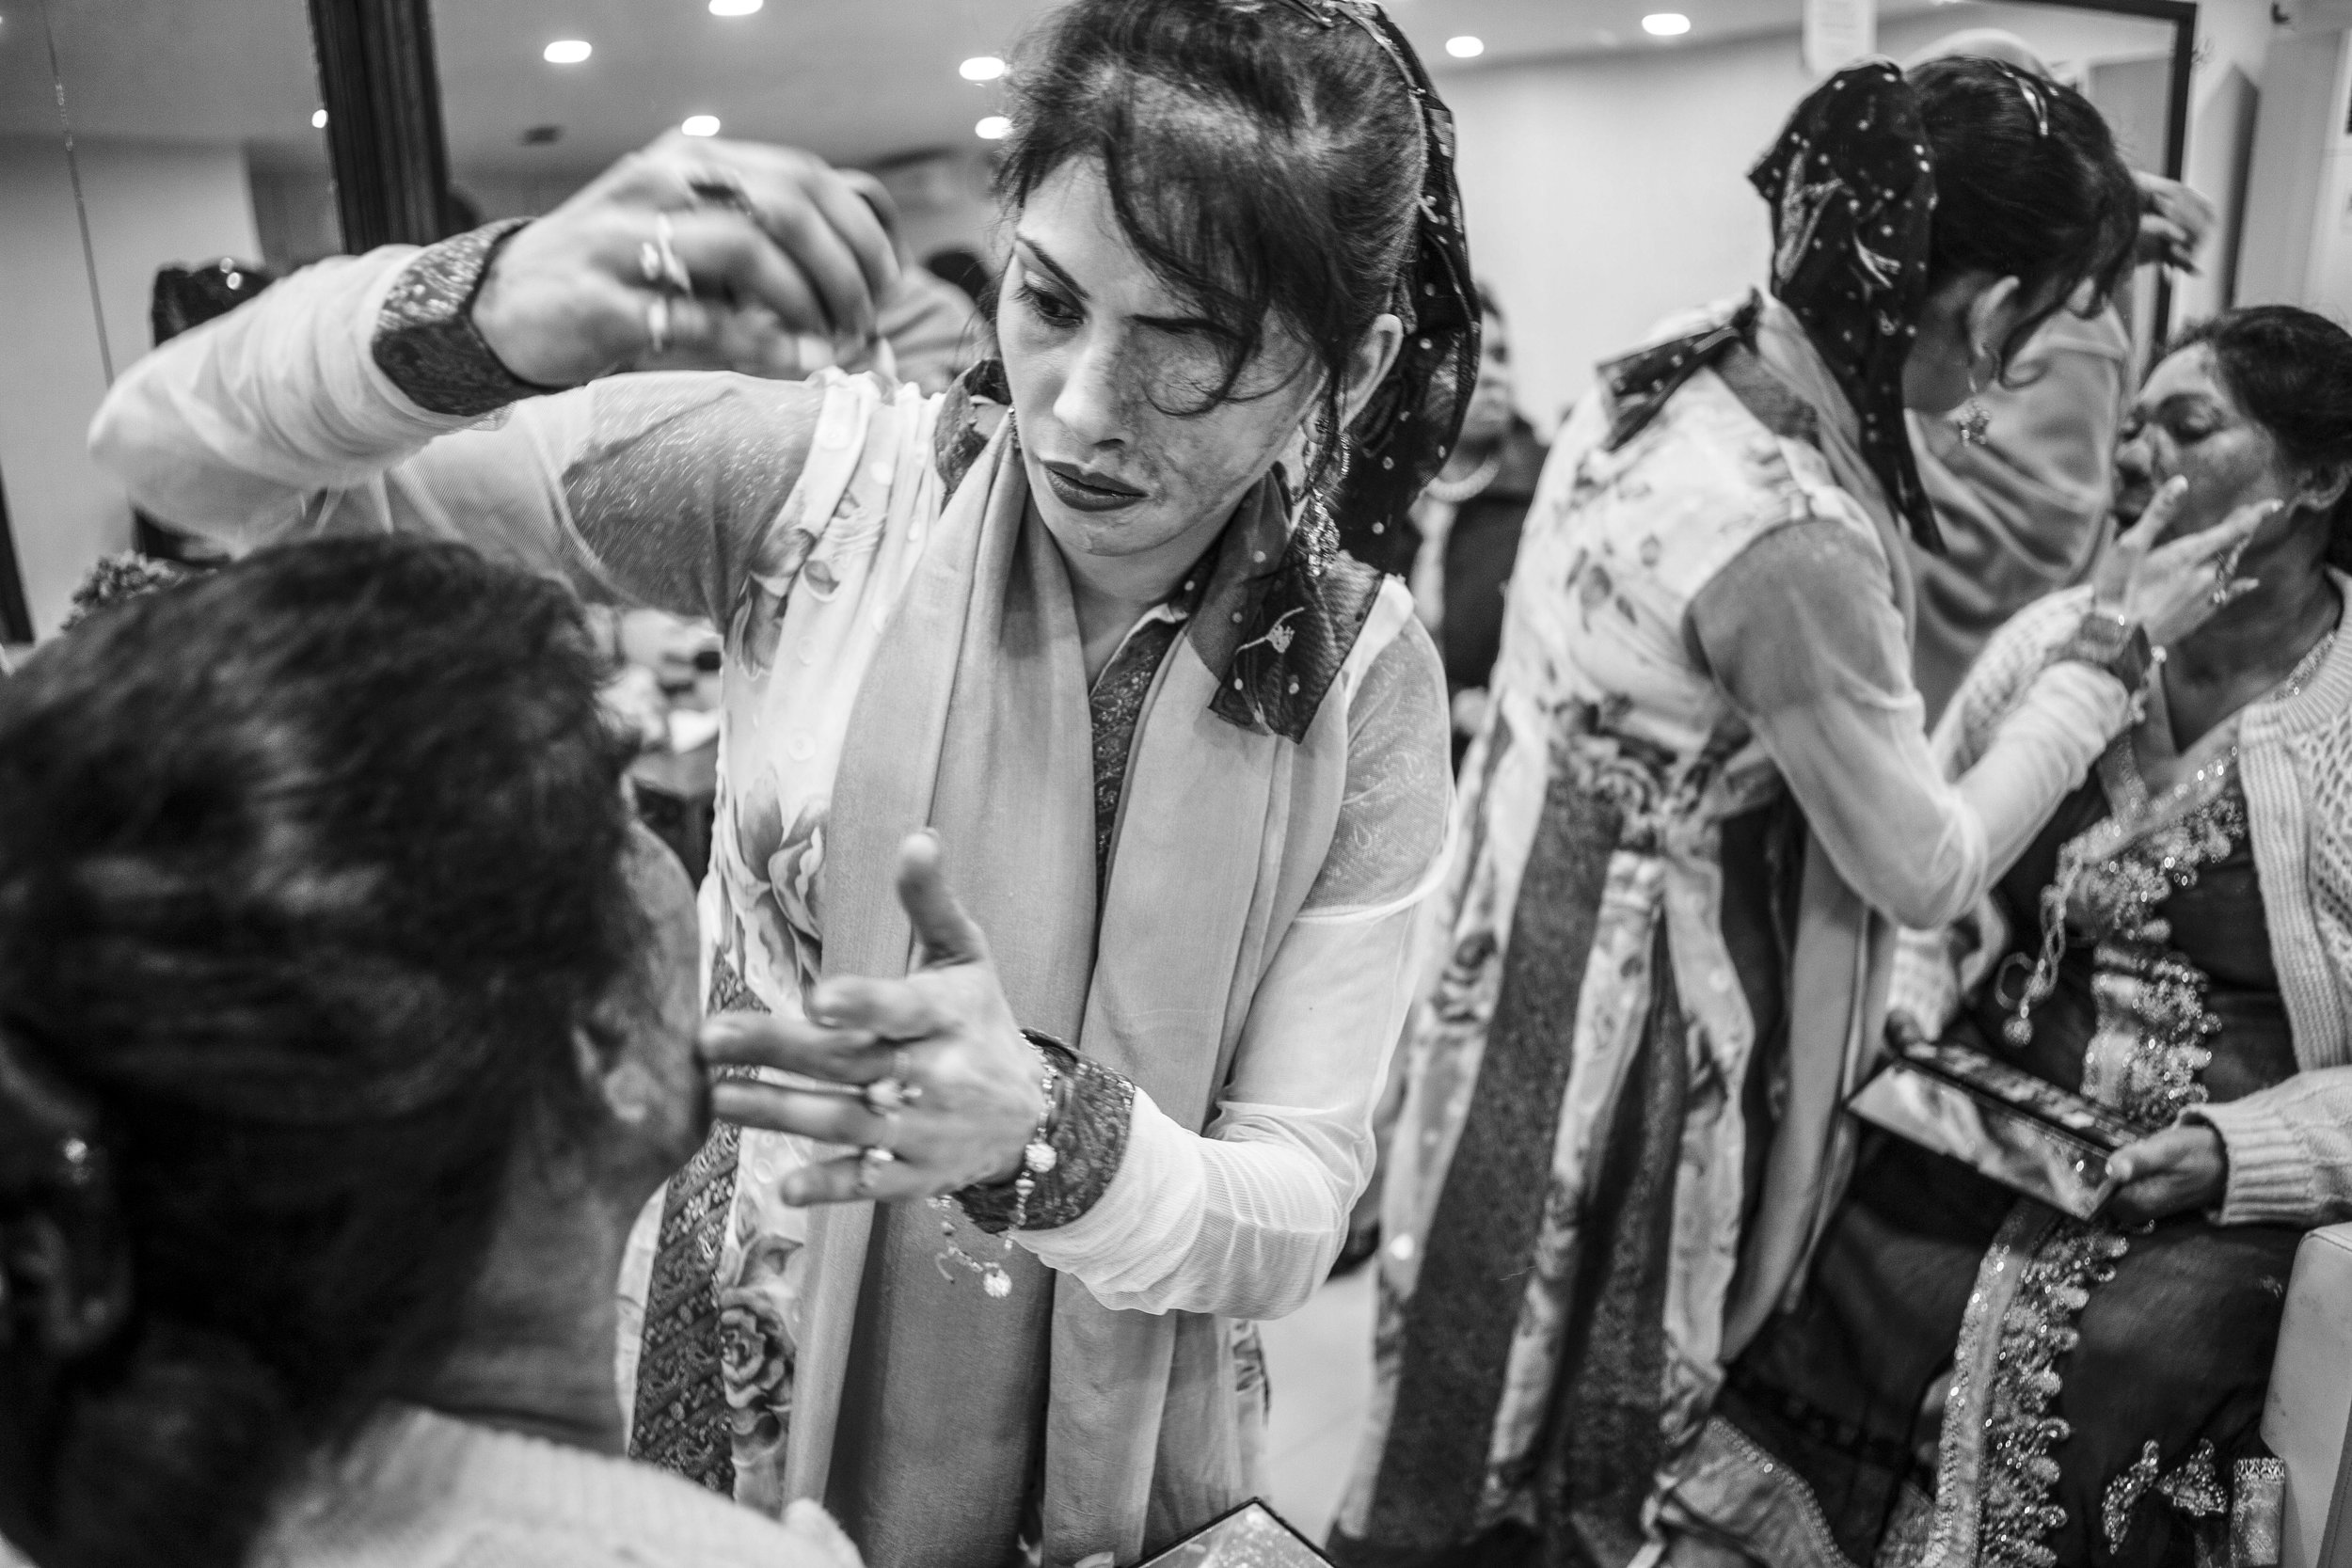 Acid attack survivors Bushra Shafi (Left) gets a makeover by Naureen Jabbar (Right) for the wedding of Sarwari Bibi at Depilex Salon, Jan. 7, 2016 in Lahore, Pakistan.